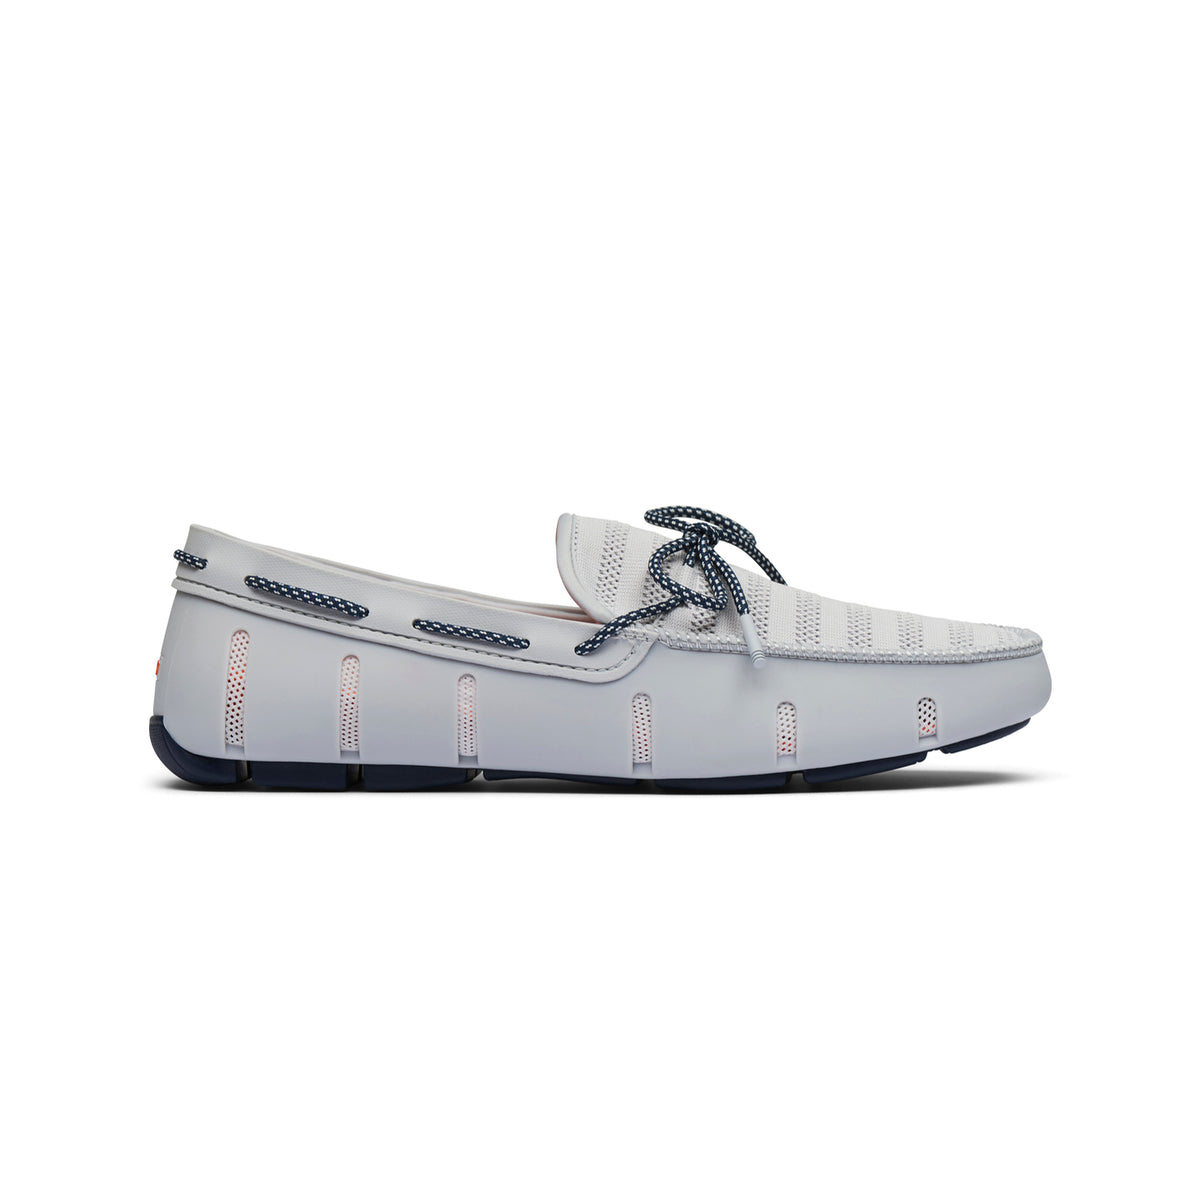 Knit Lace Loafer - background::white,variant::Glacier Gray/Navy